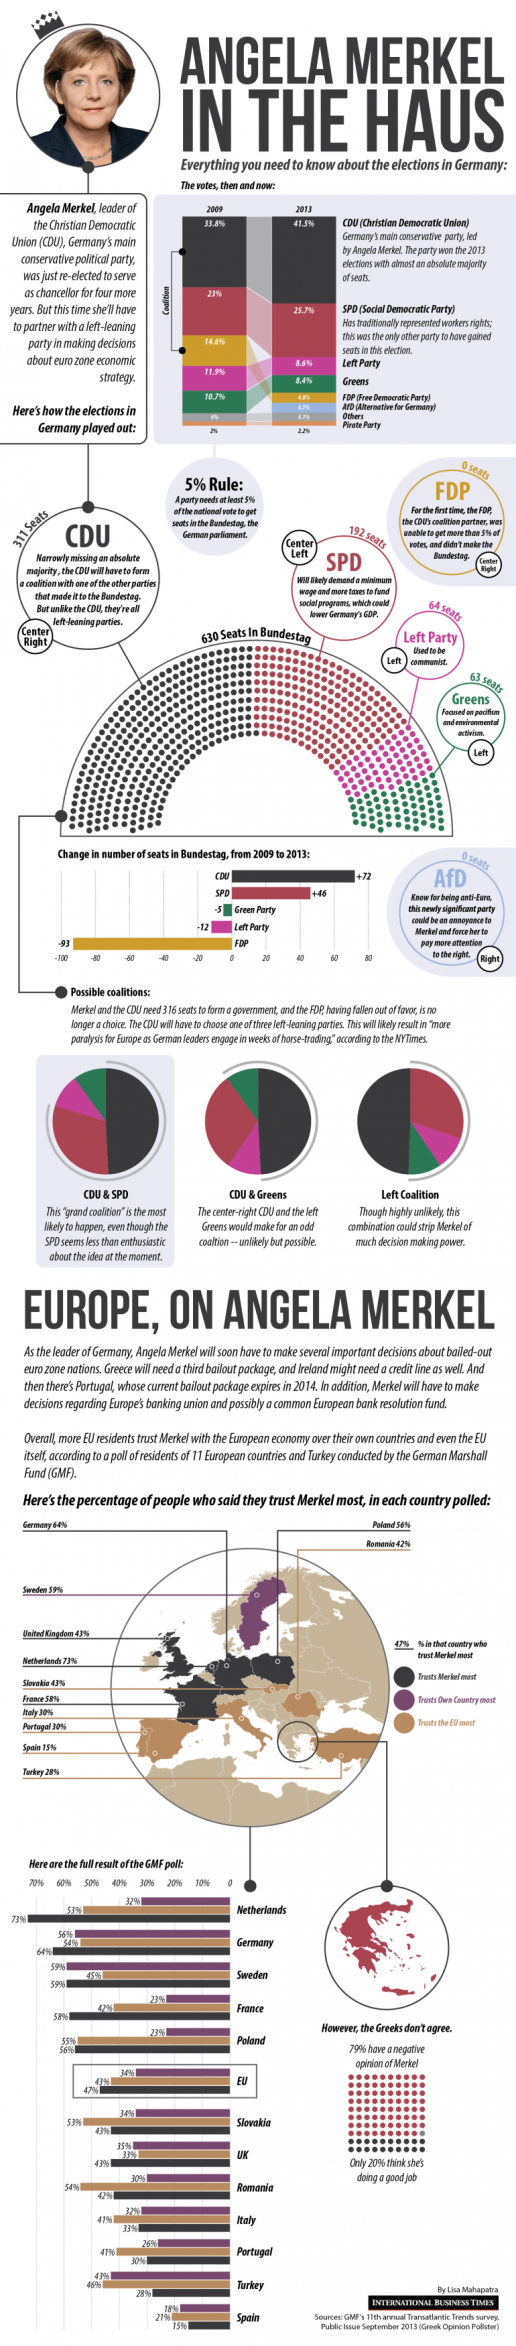 11. Everything you need to know about German elections